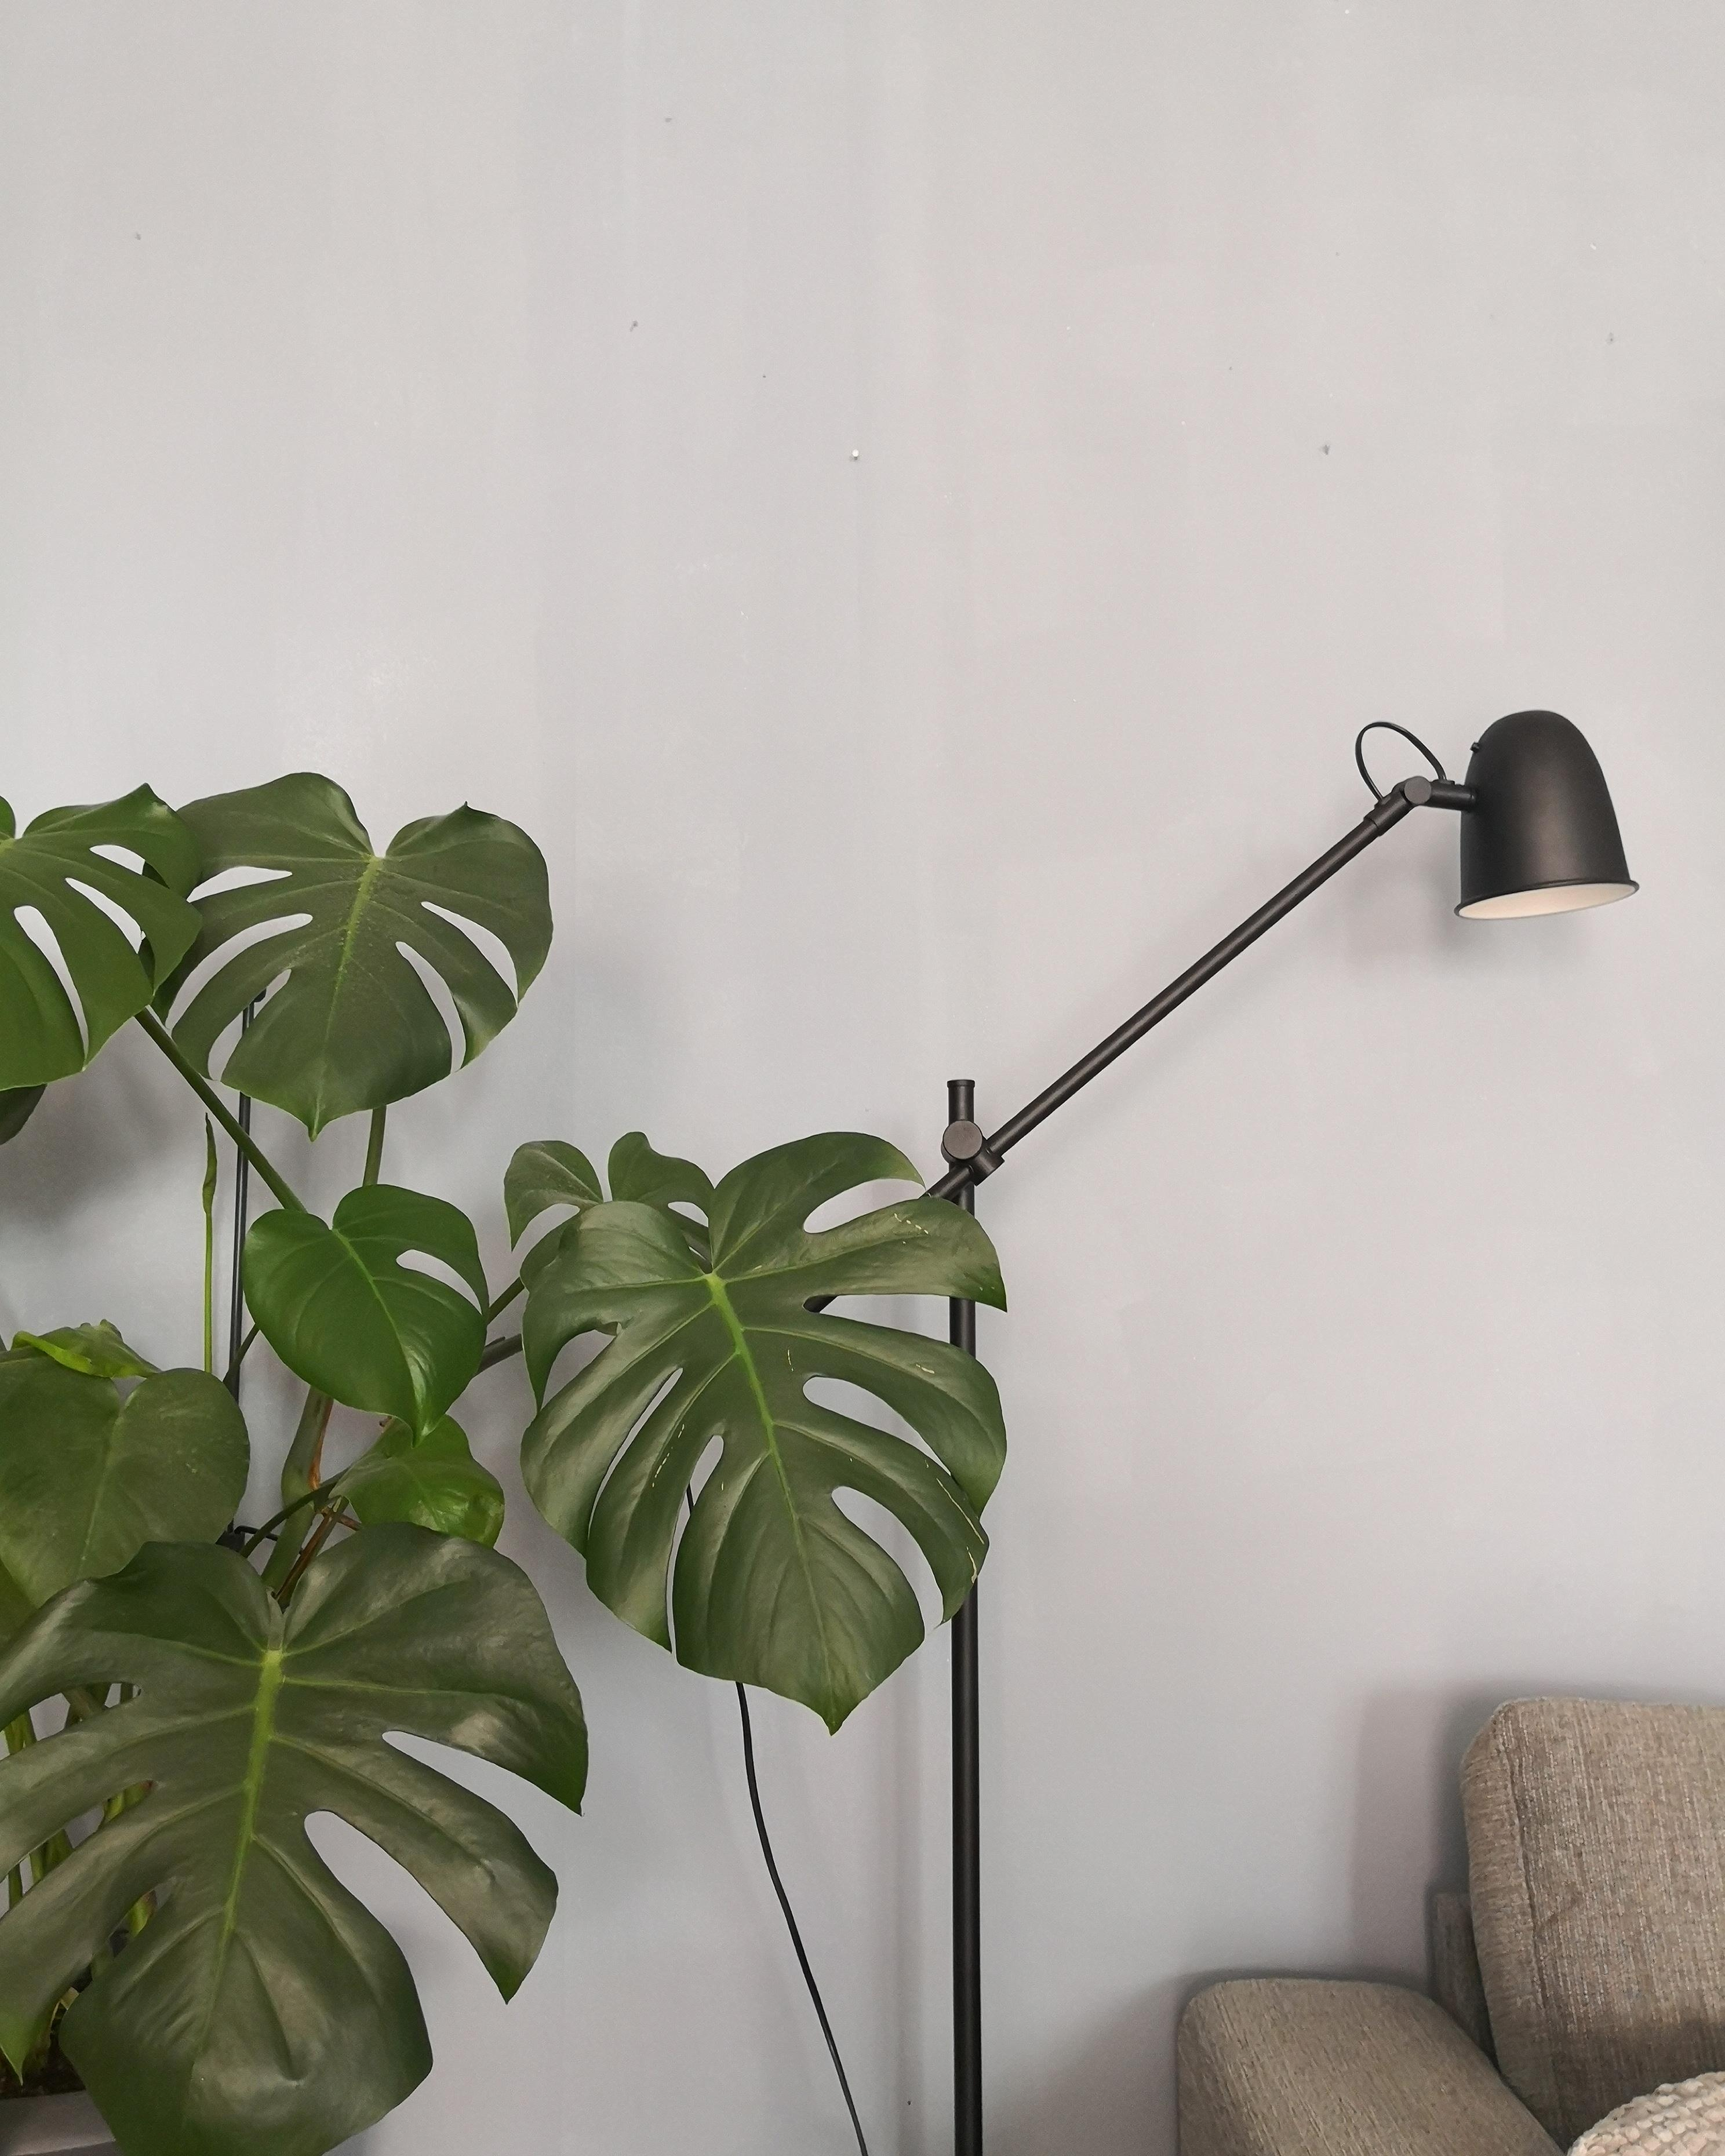 #plants #monstera #minimalism #view #livingroom